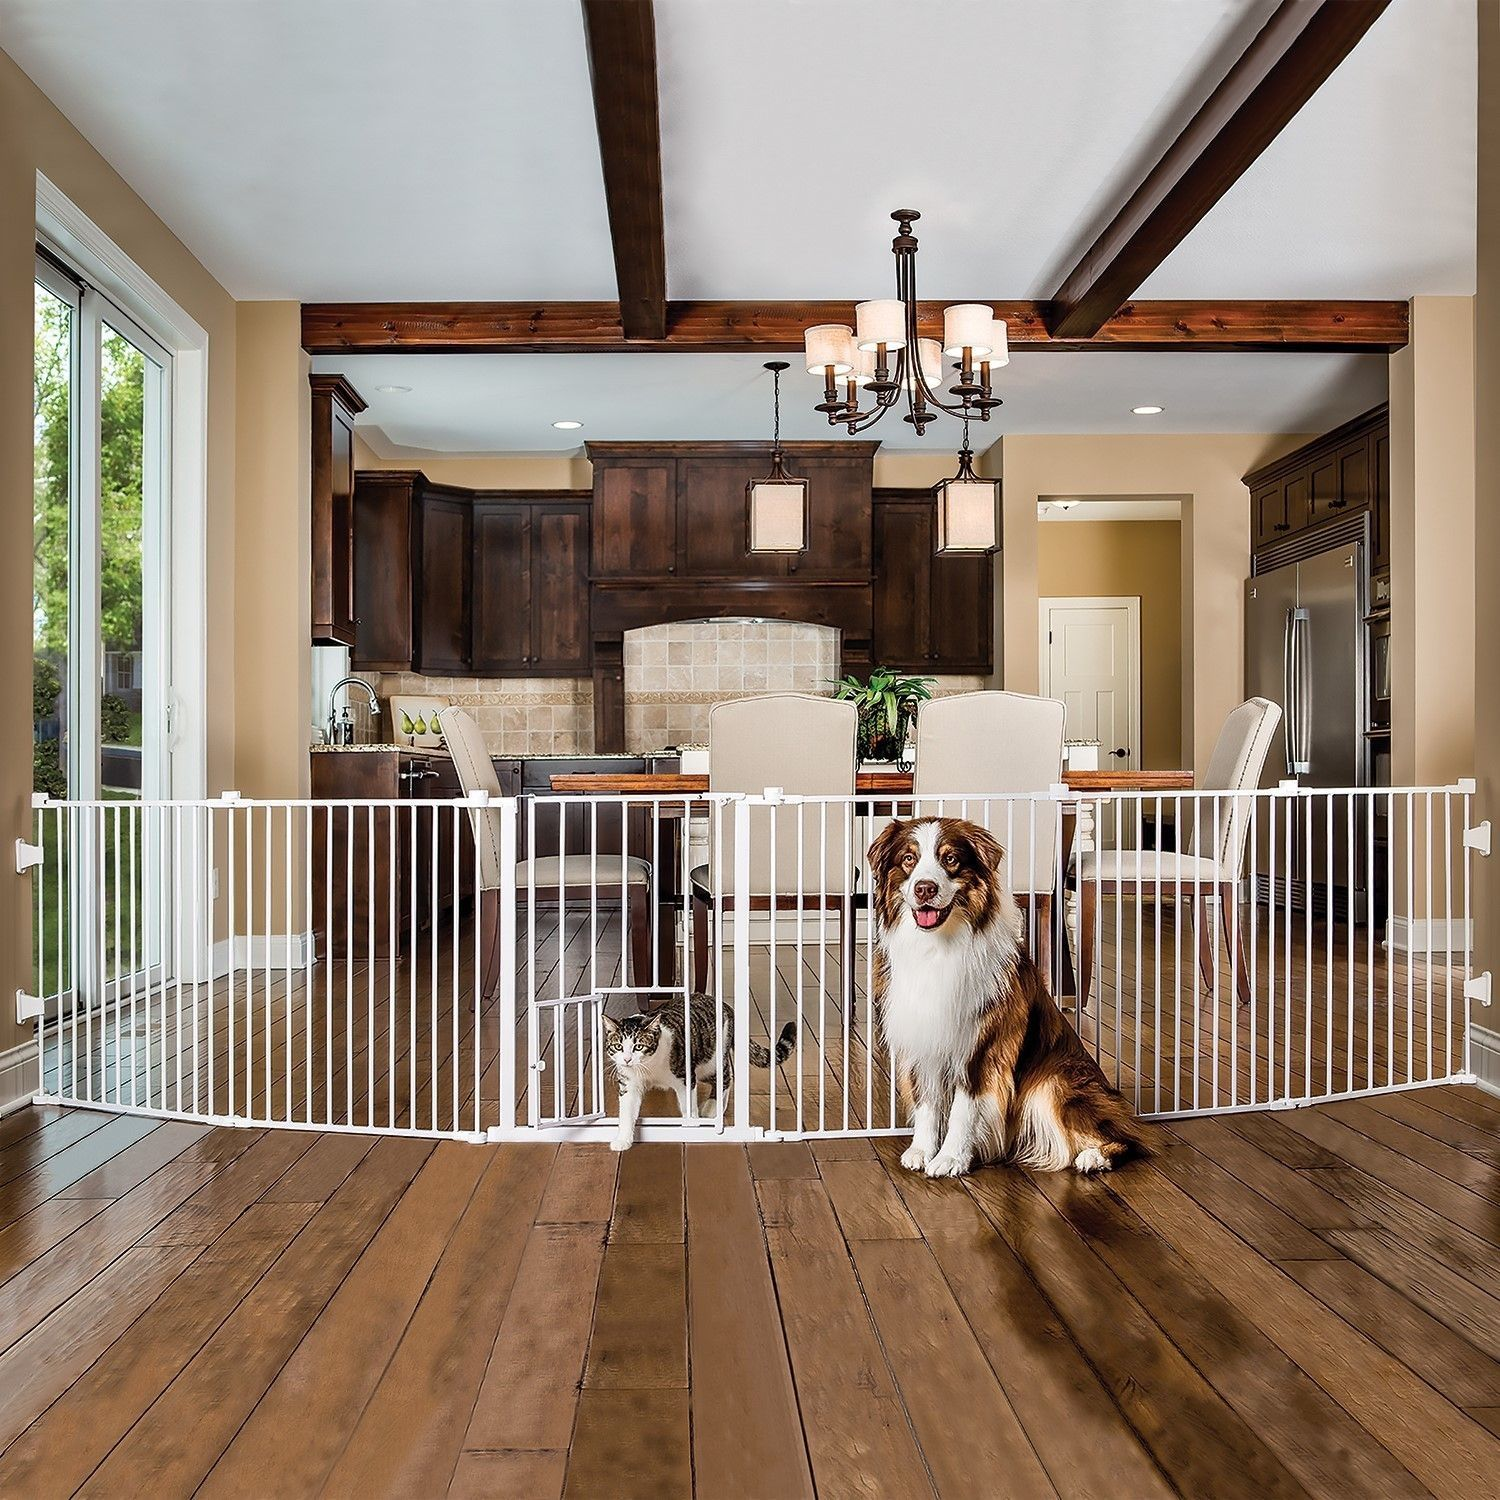 Carlson 2 In 1 White Super Pet Gate And Pet Yard Convertible